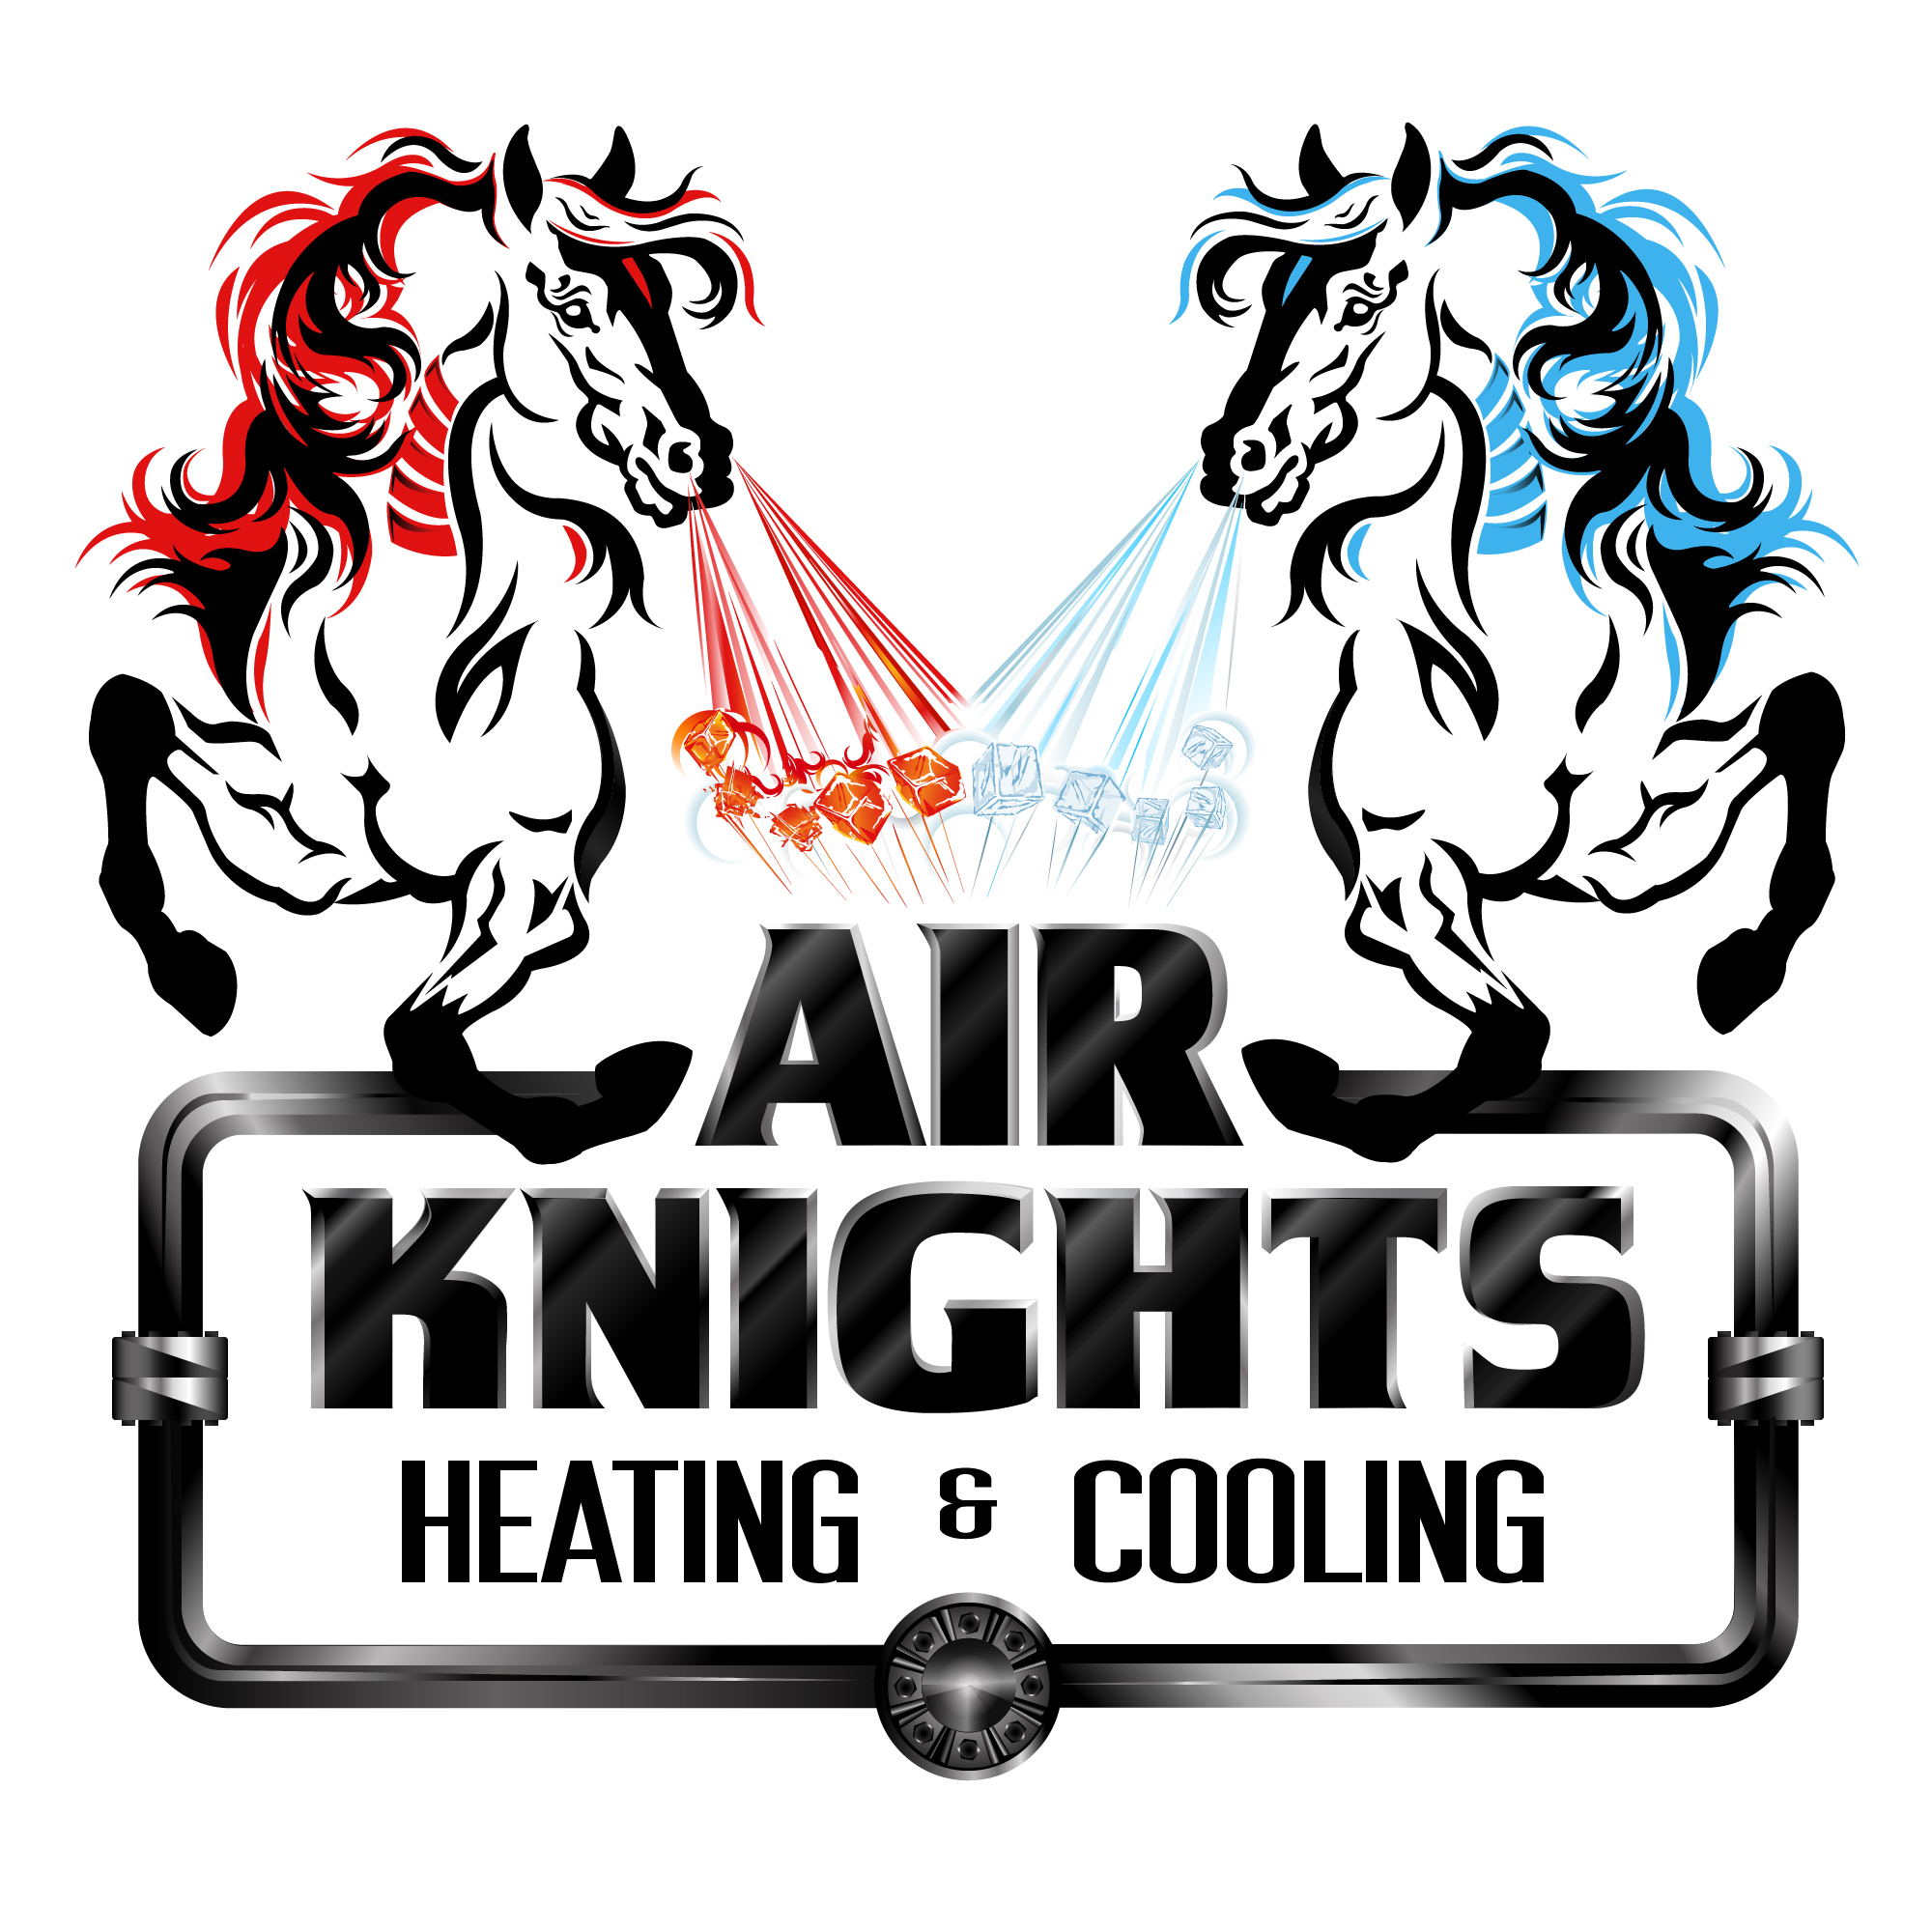 Air Knight Heating and Cooling, Inc.